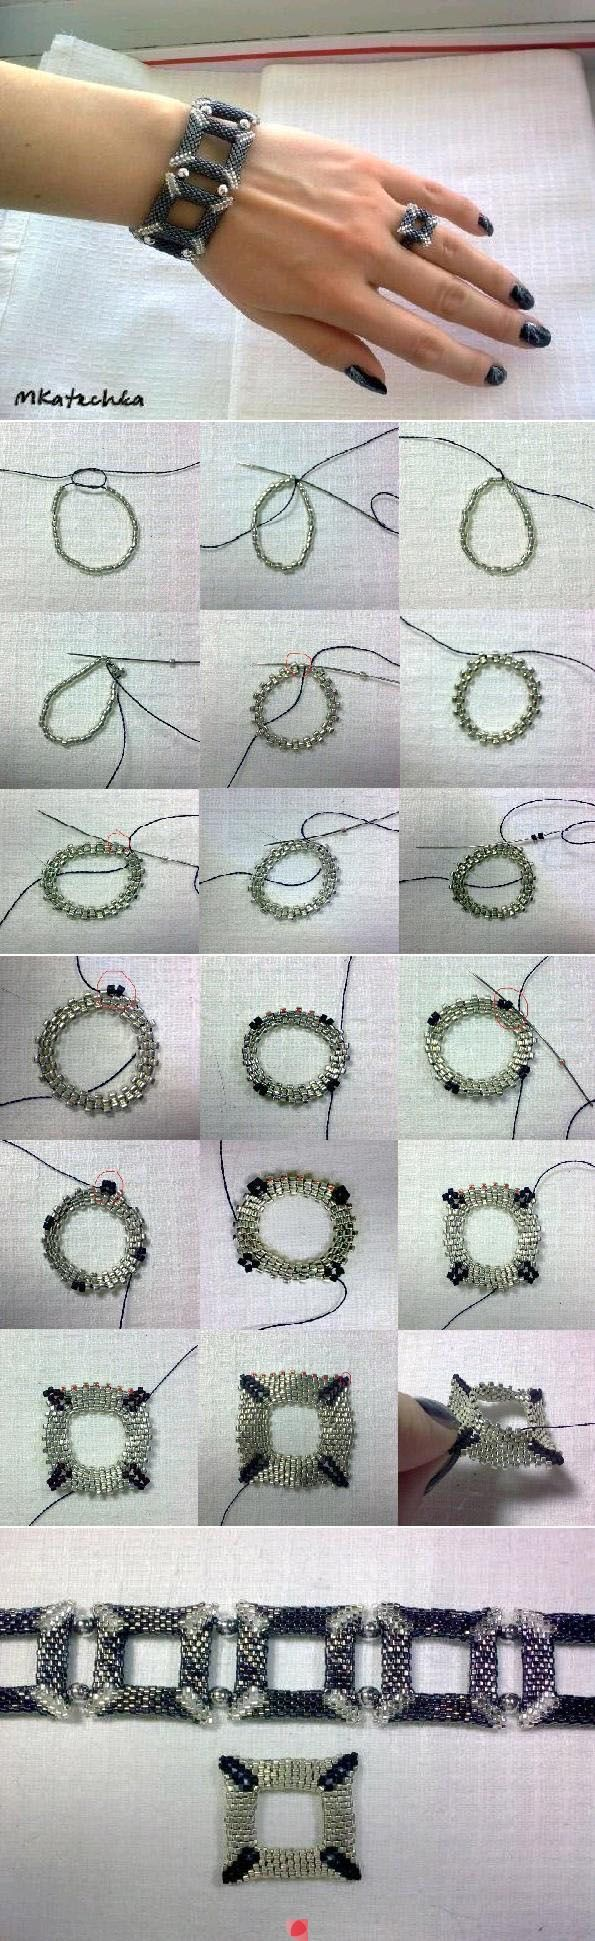 A ring and a bracelet tutorial